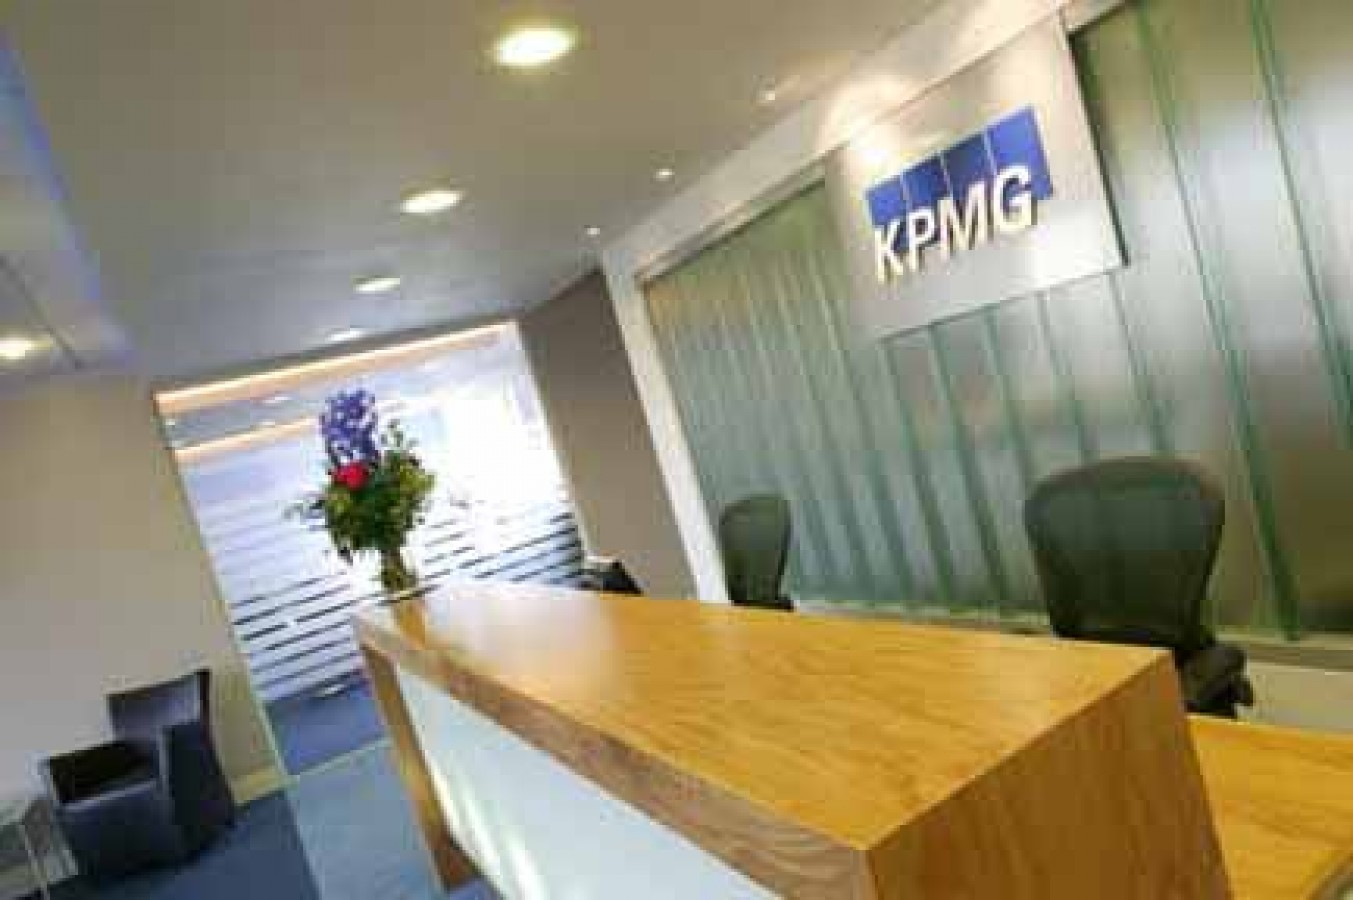 Kpmg Stokes House Mccue Crafted Fit Bespoke Interior Solutions Belfast Northern Ireland